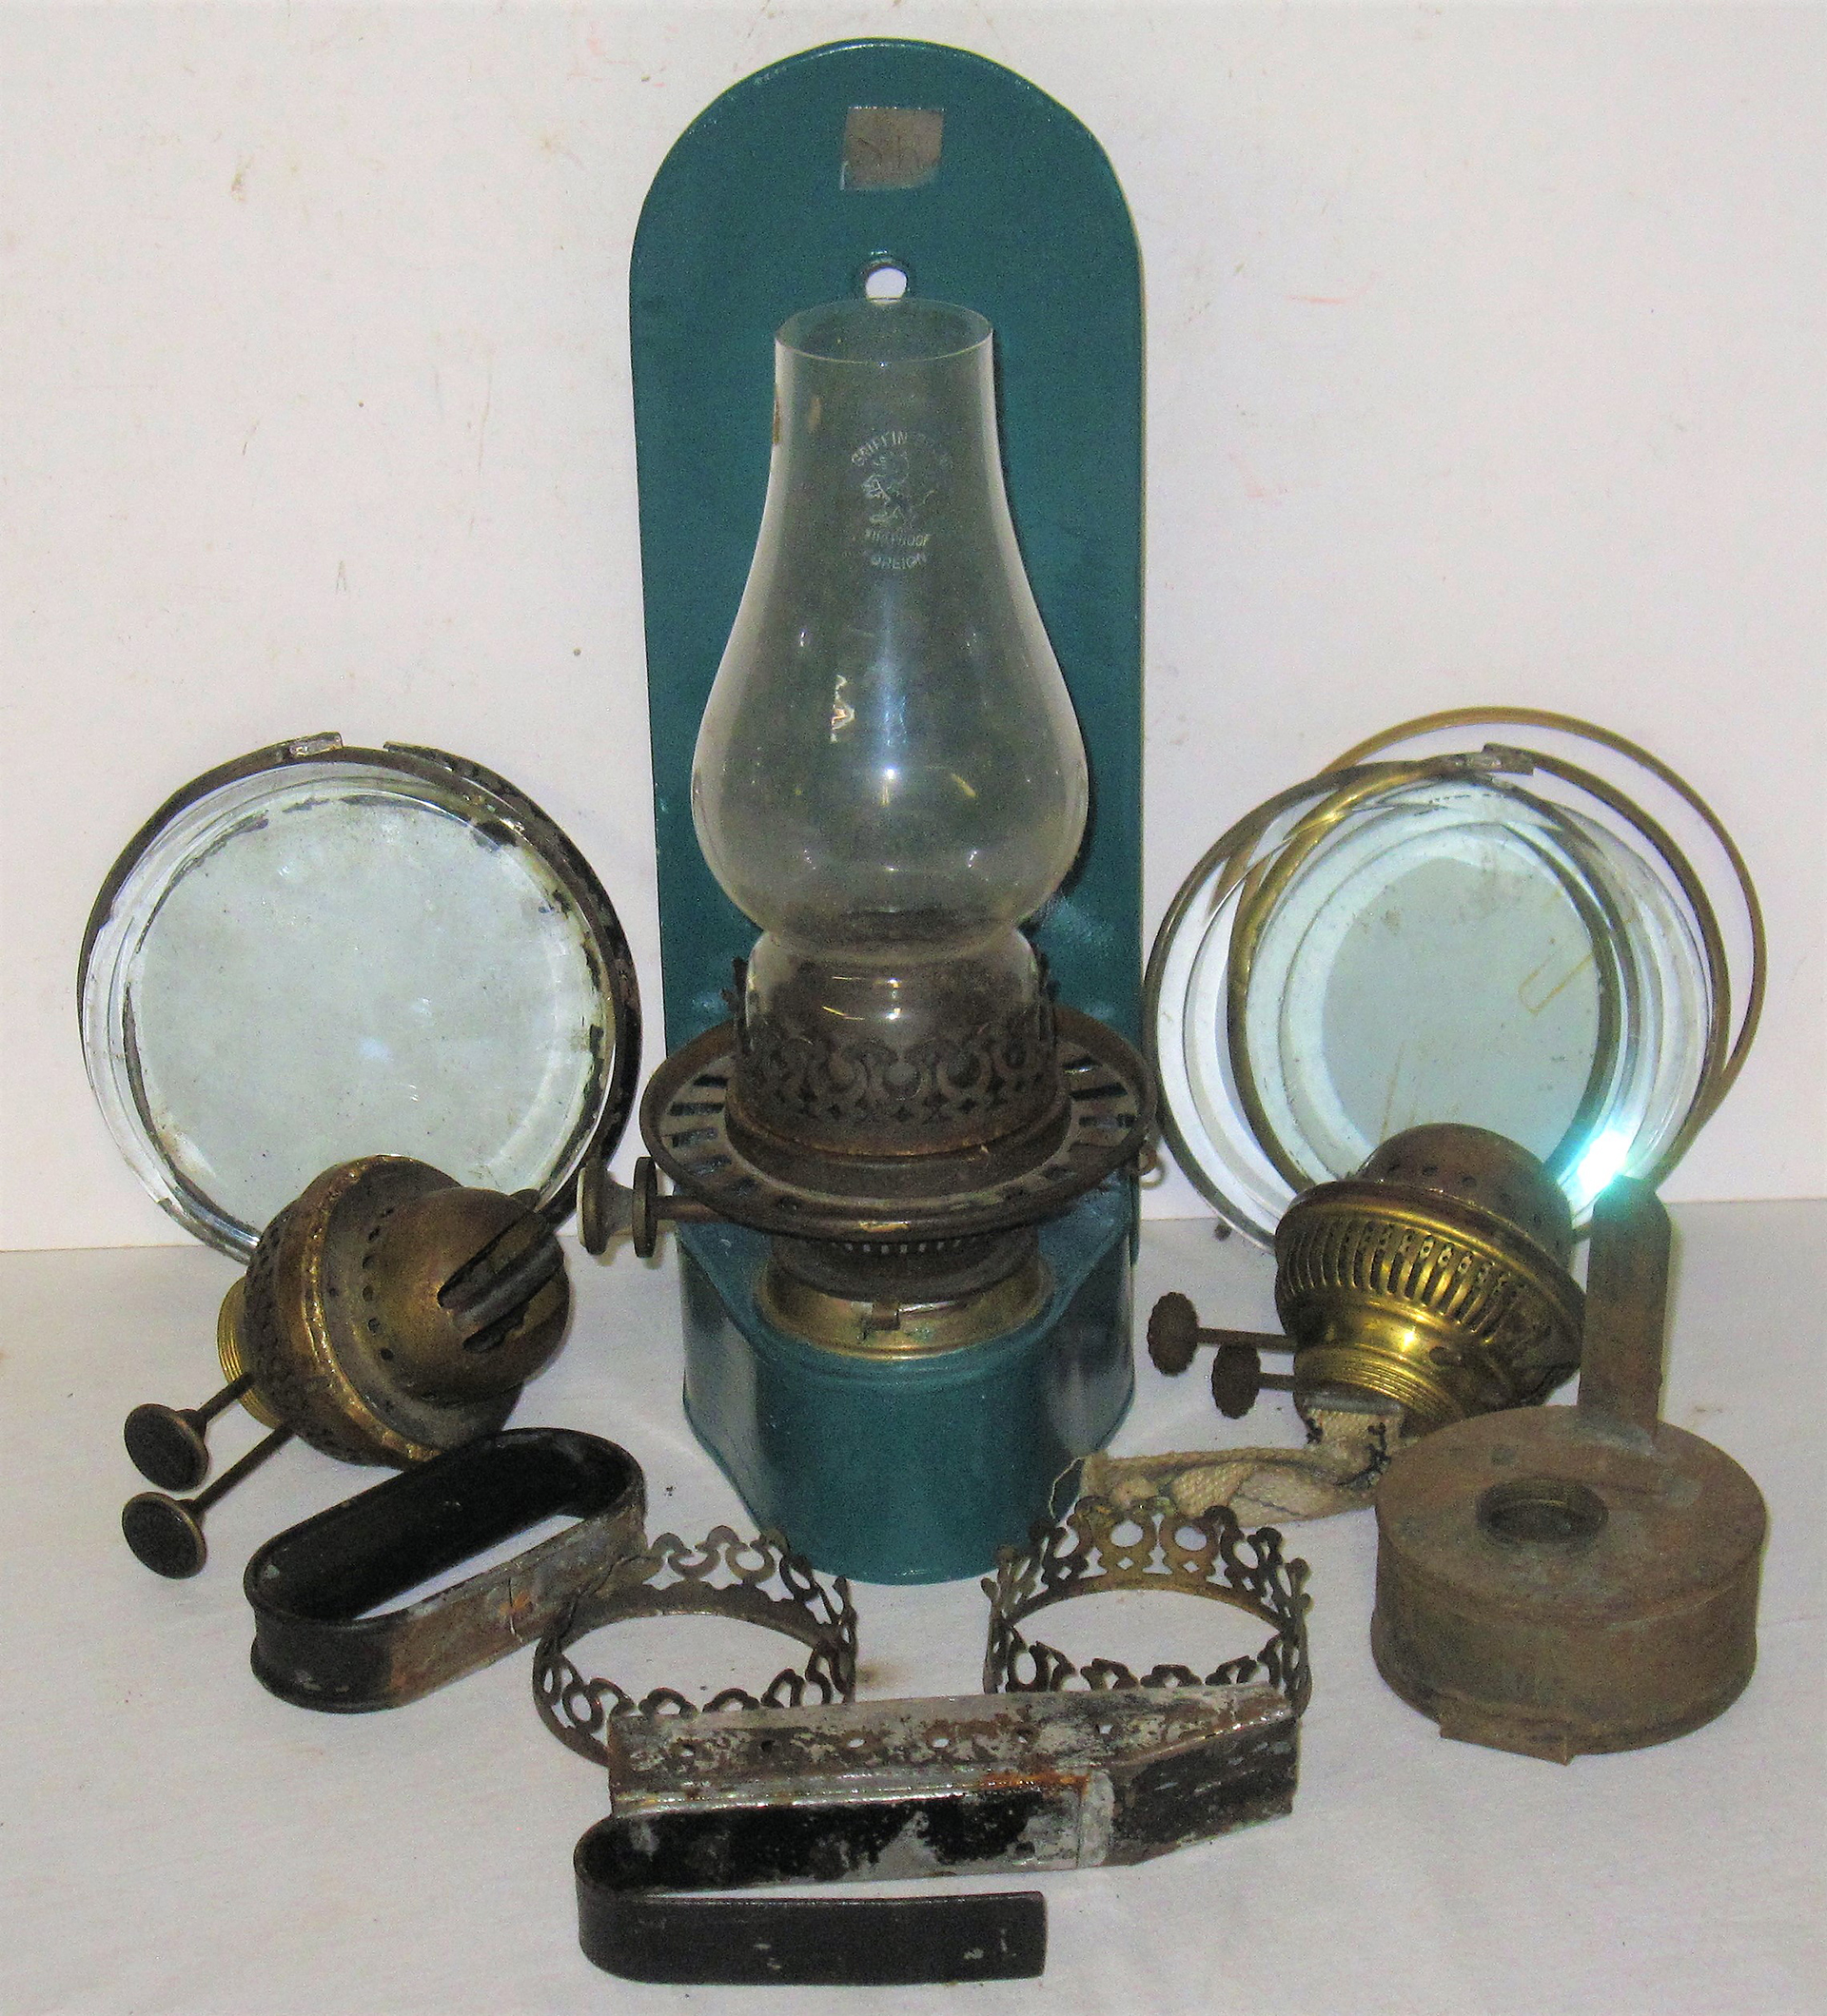 A collection of Lamp Spares to include a stamped SR wall lamp complete with twin burner and glass